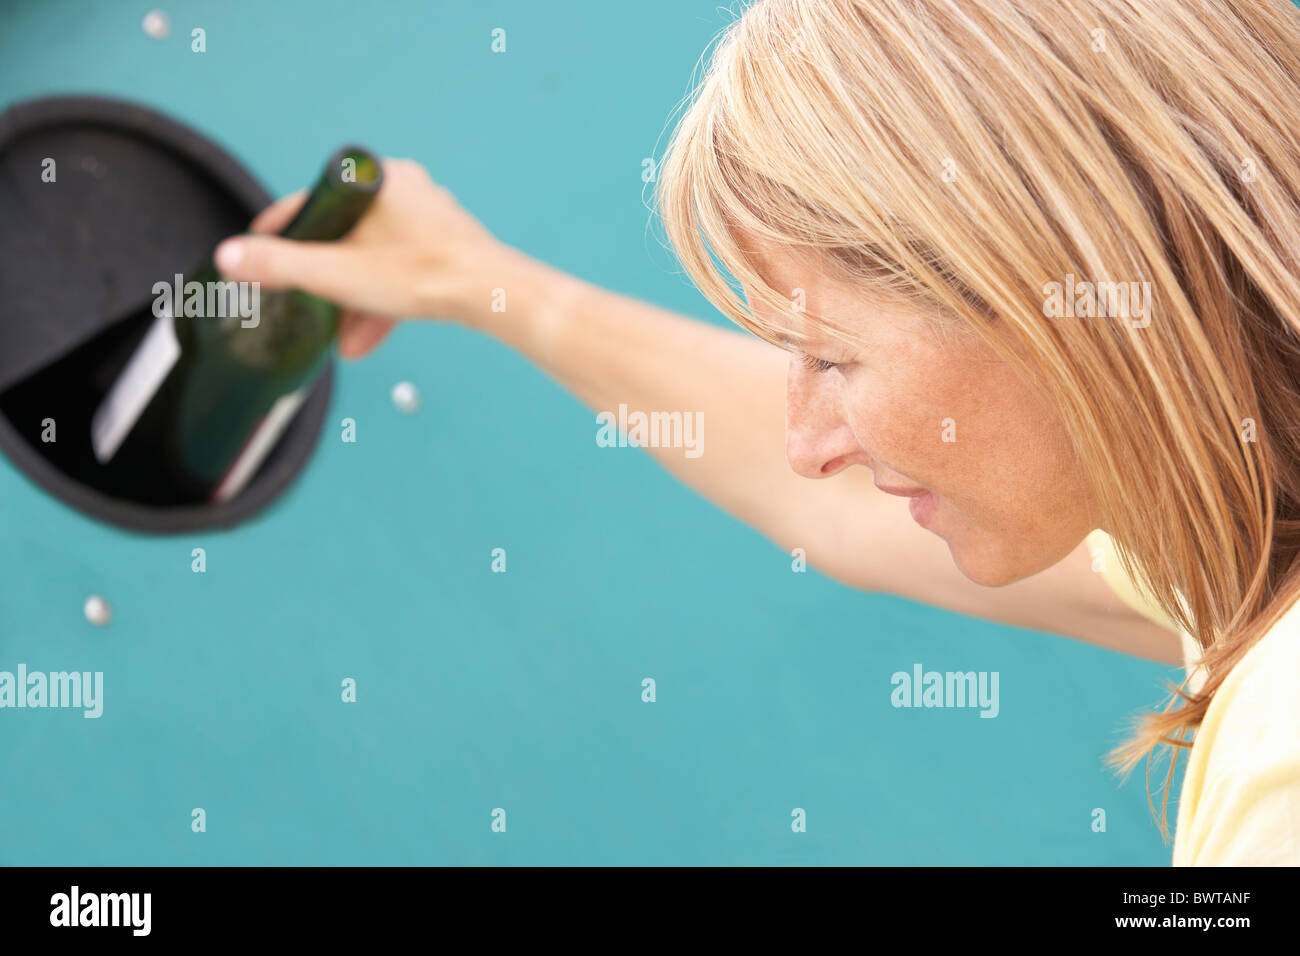 Woman At Recycling Centre Disposing Of Glass At Bottle Bank - Stock Image